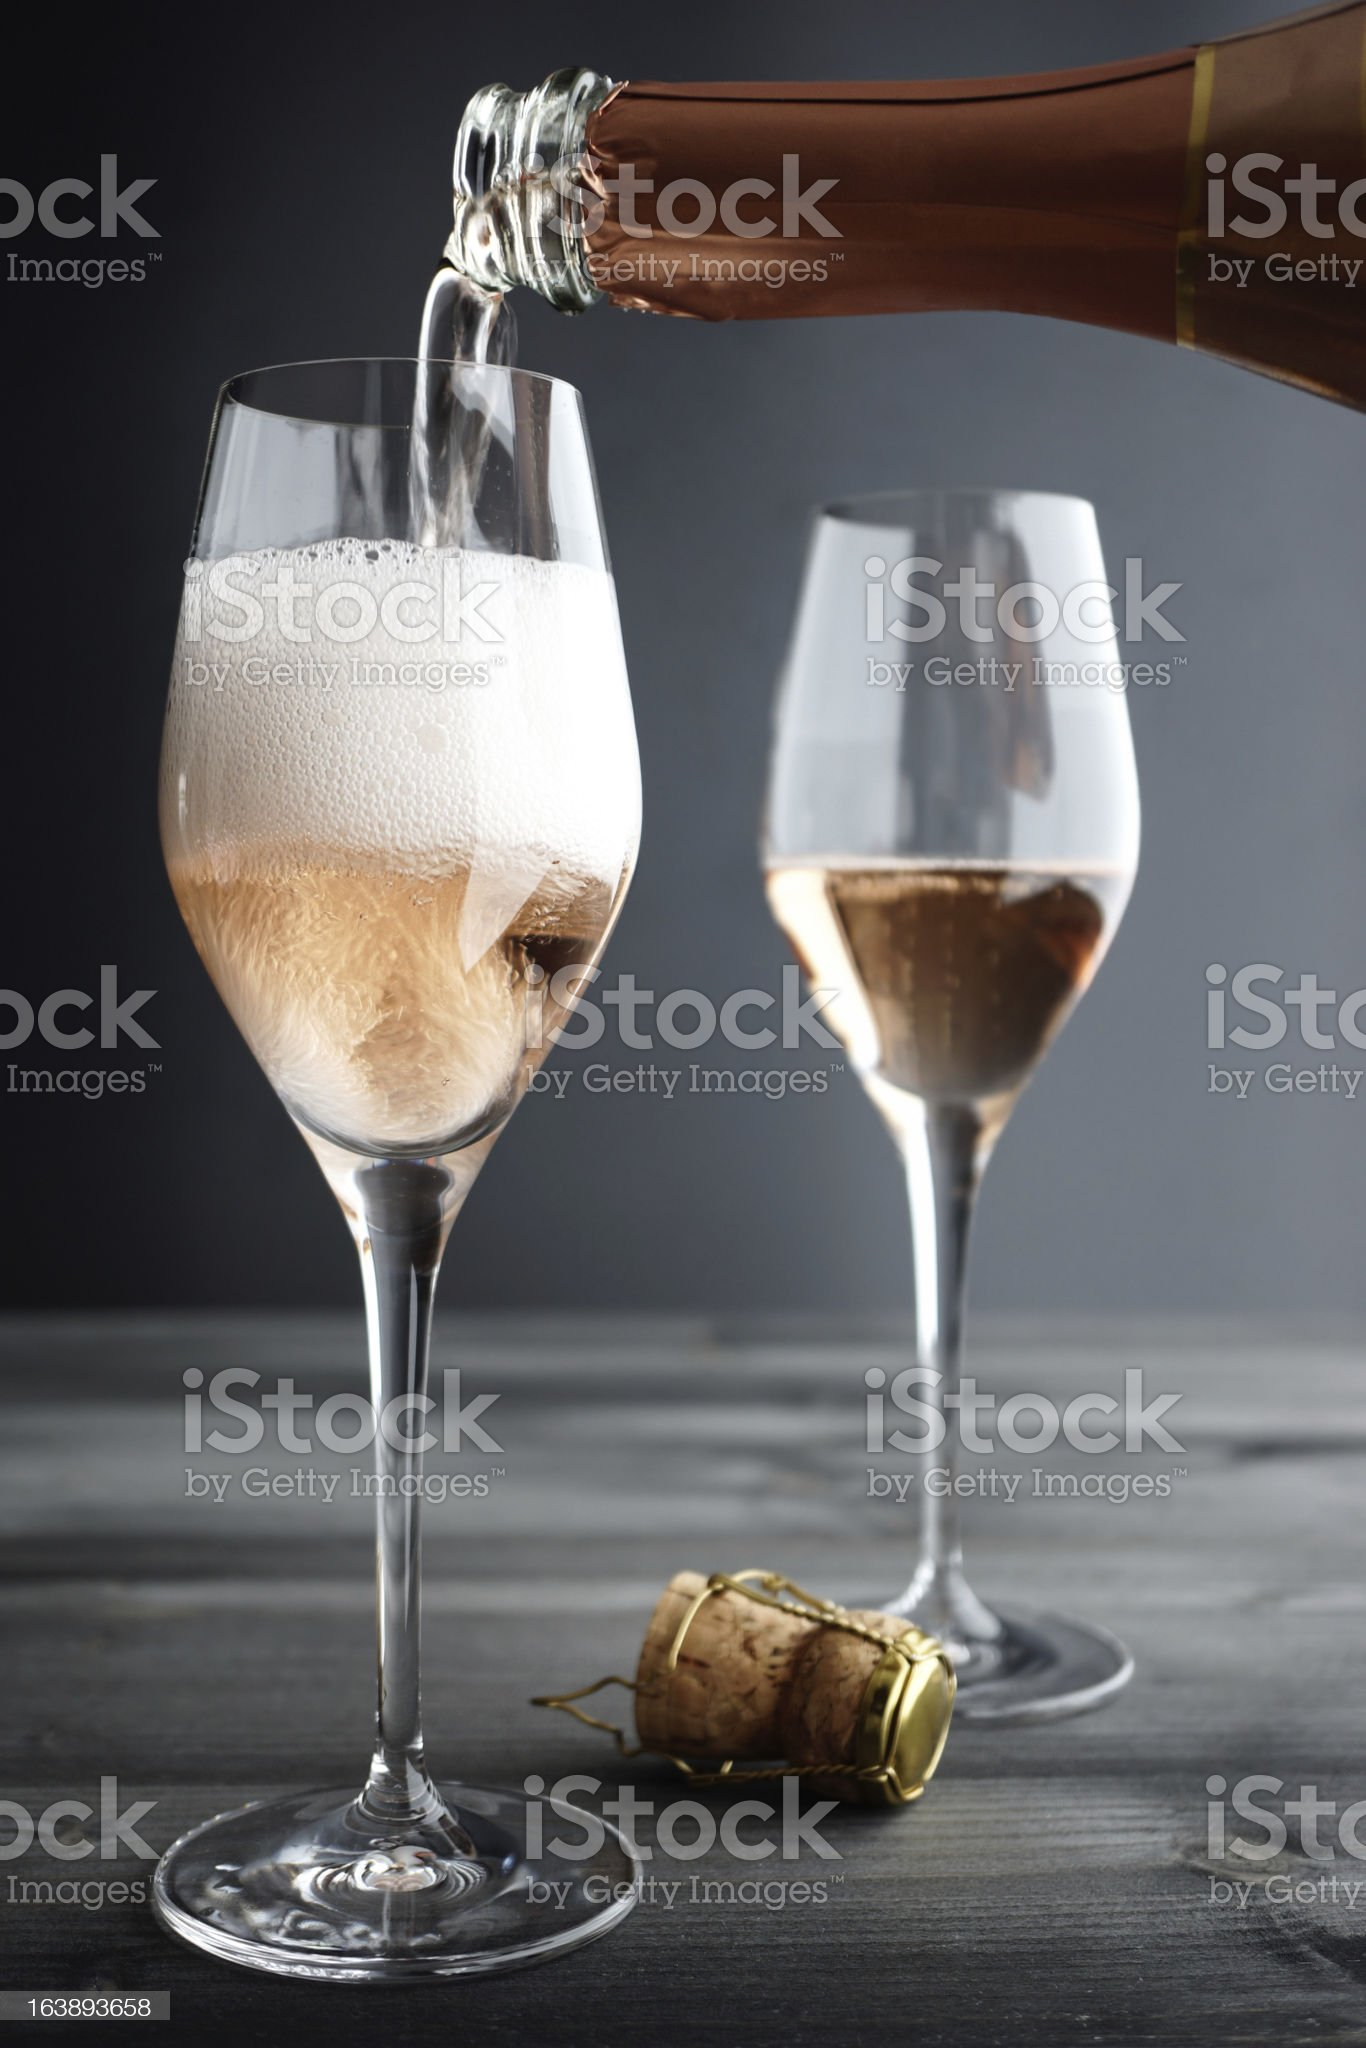 Rose Champagne being filled into Glass royalty-free stock photo